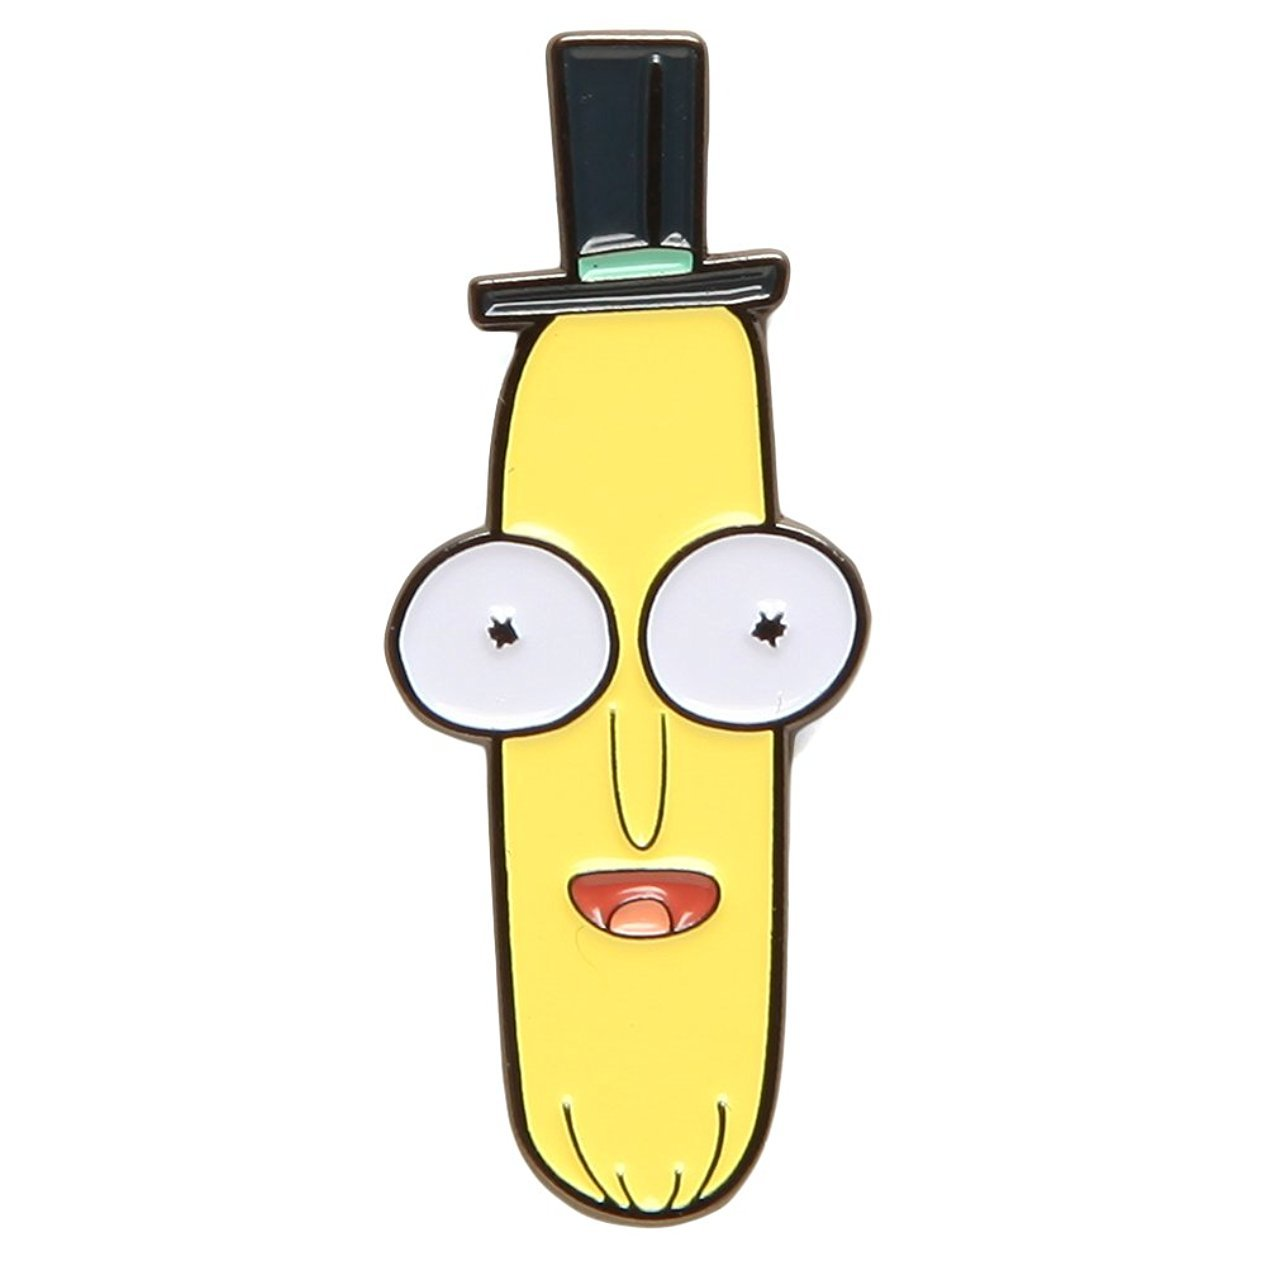 Rick and Morty Enamal Collector Pin: Mr. Poopy Butthole Hot Properties RLP52